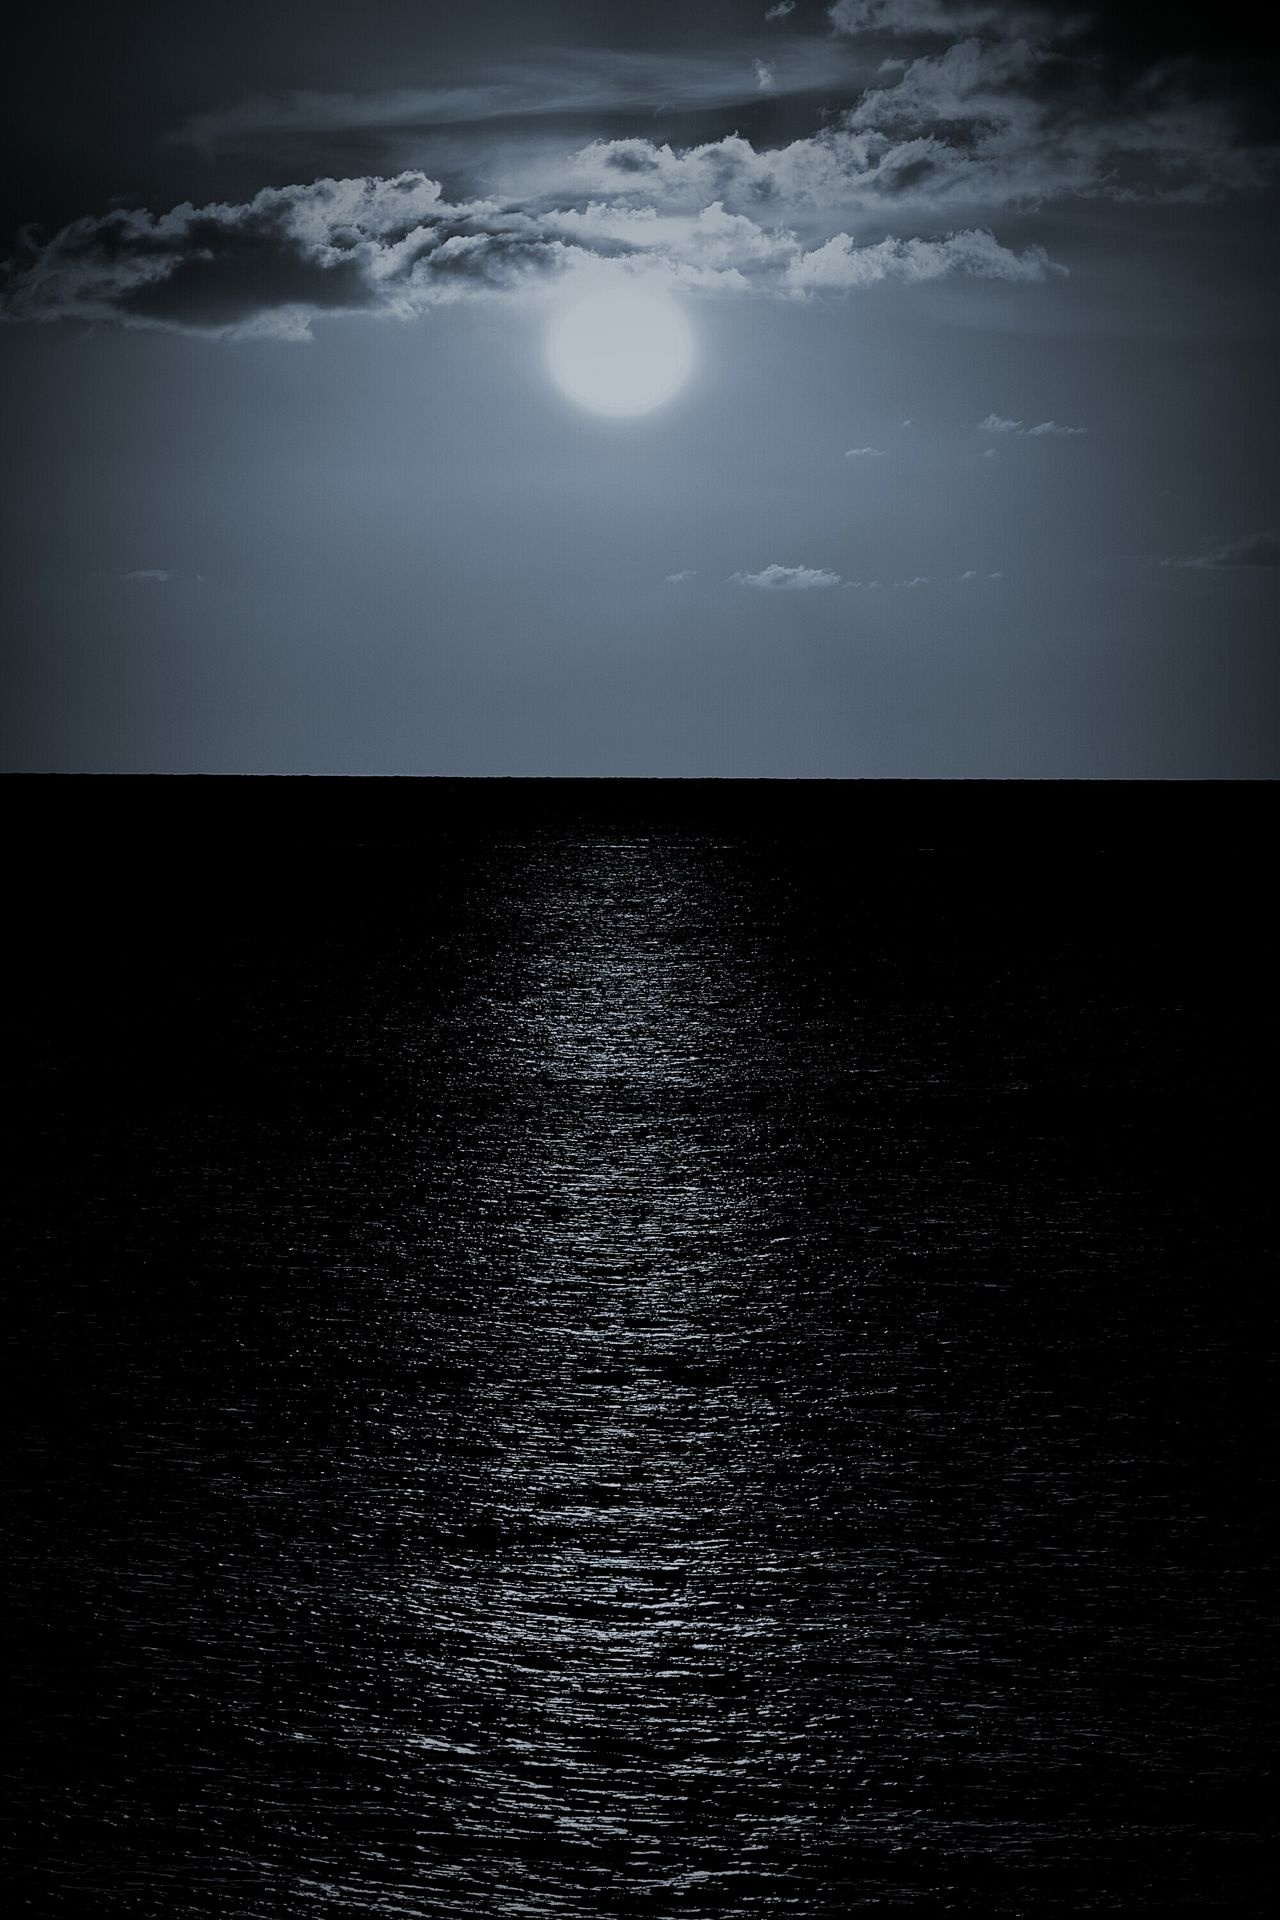 Water Nature Reflection Outdoors Scenics Sea Rippled Wet Tranquility Beauty In Nature Textured  Tranquil Scene Horizon Over Water Sky Night Refraction No People Freshness